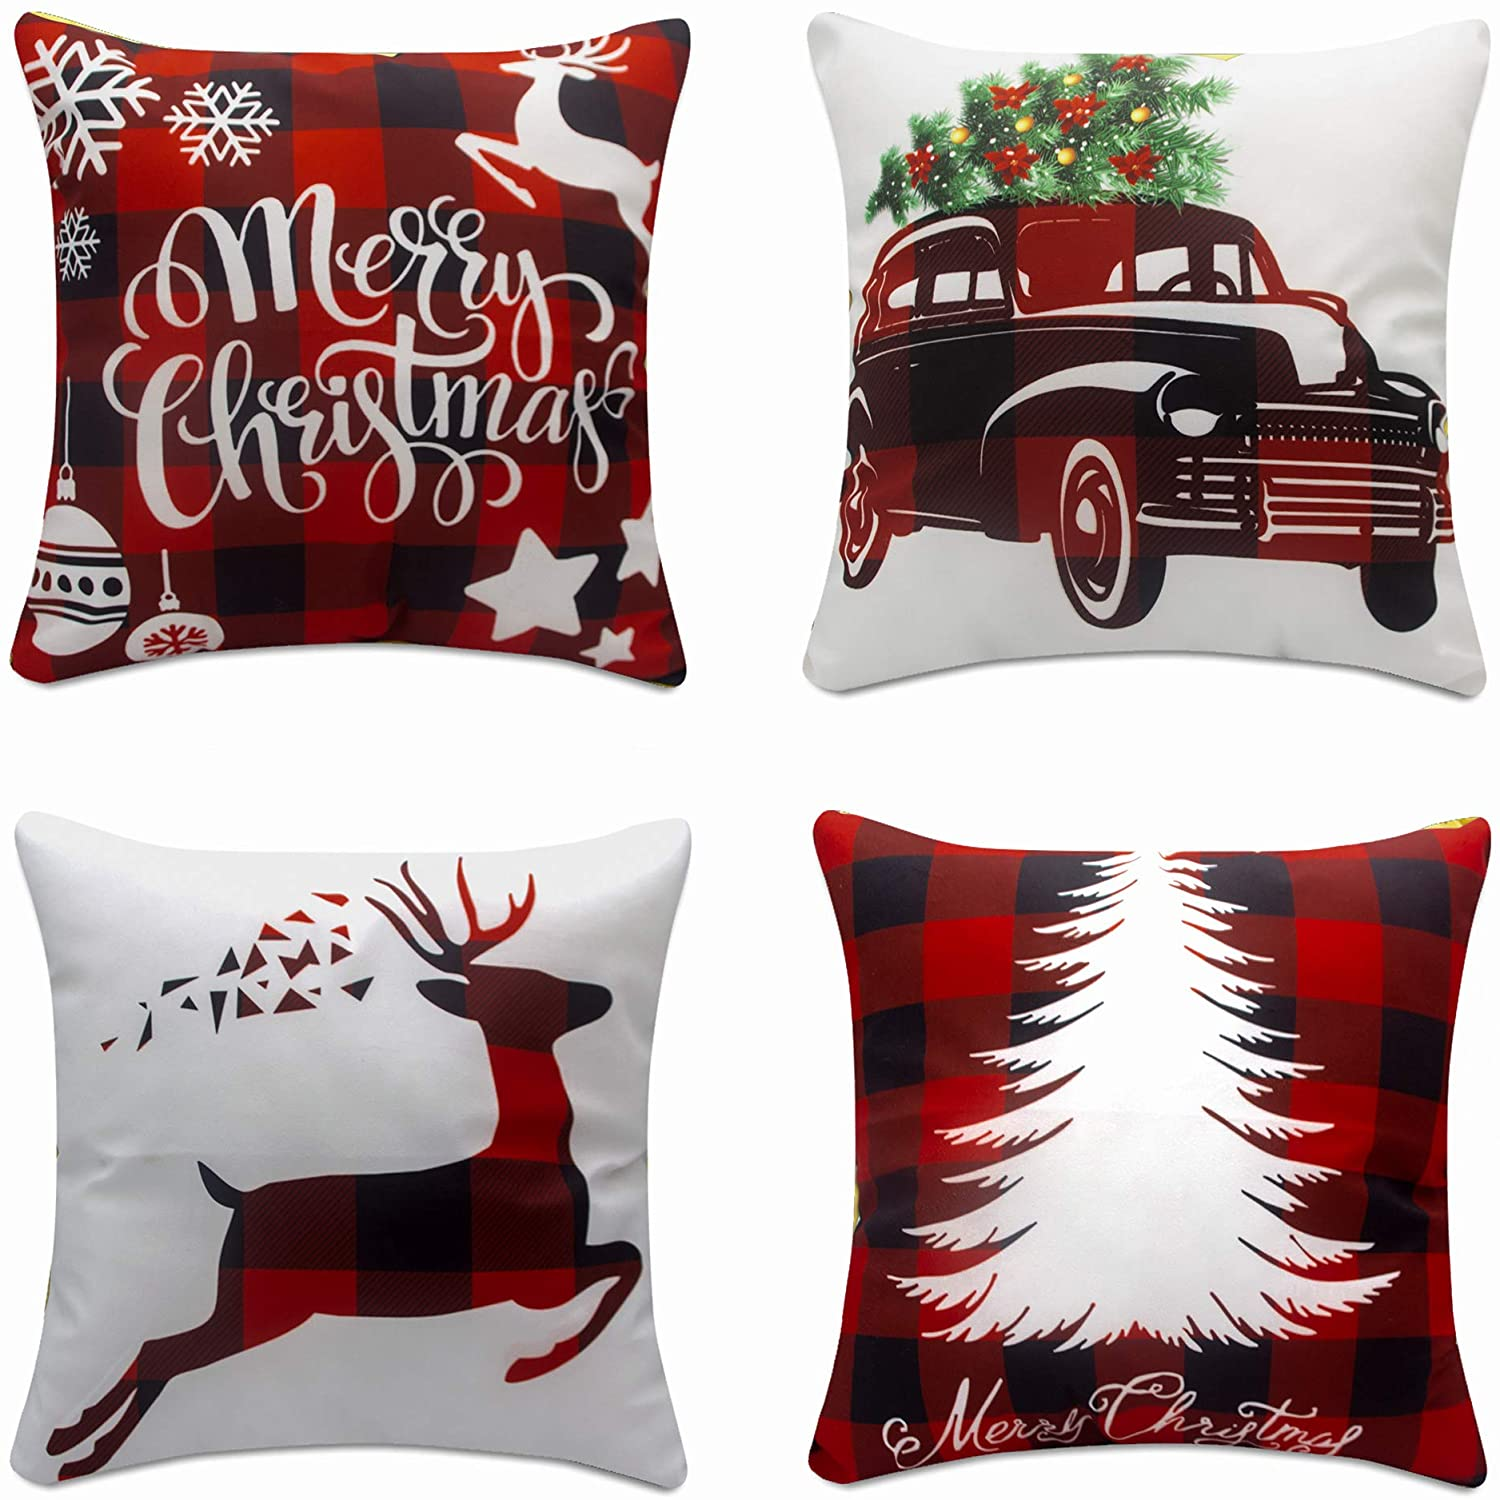 Christmas Throw Pillows Covers 18x18 Set Of 4